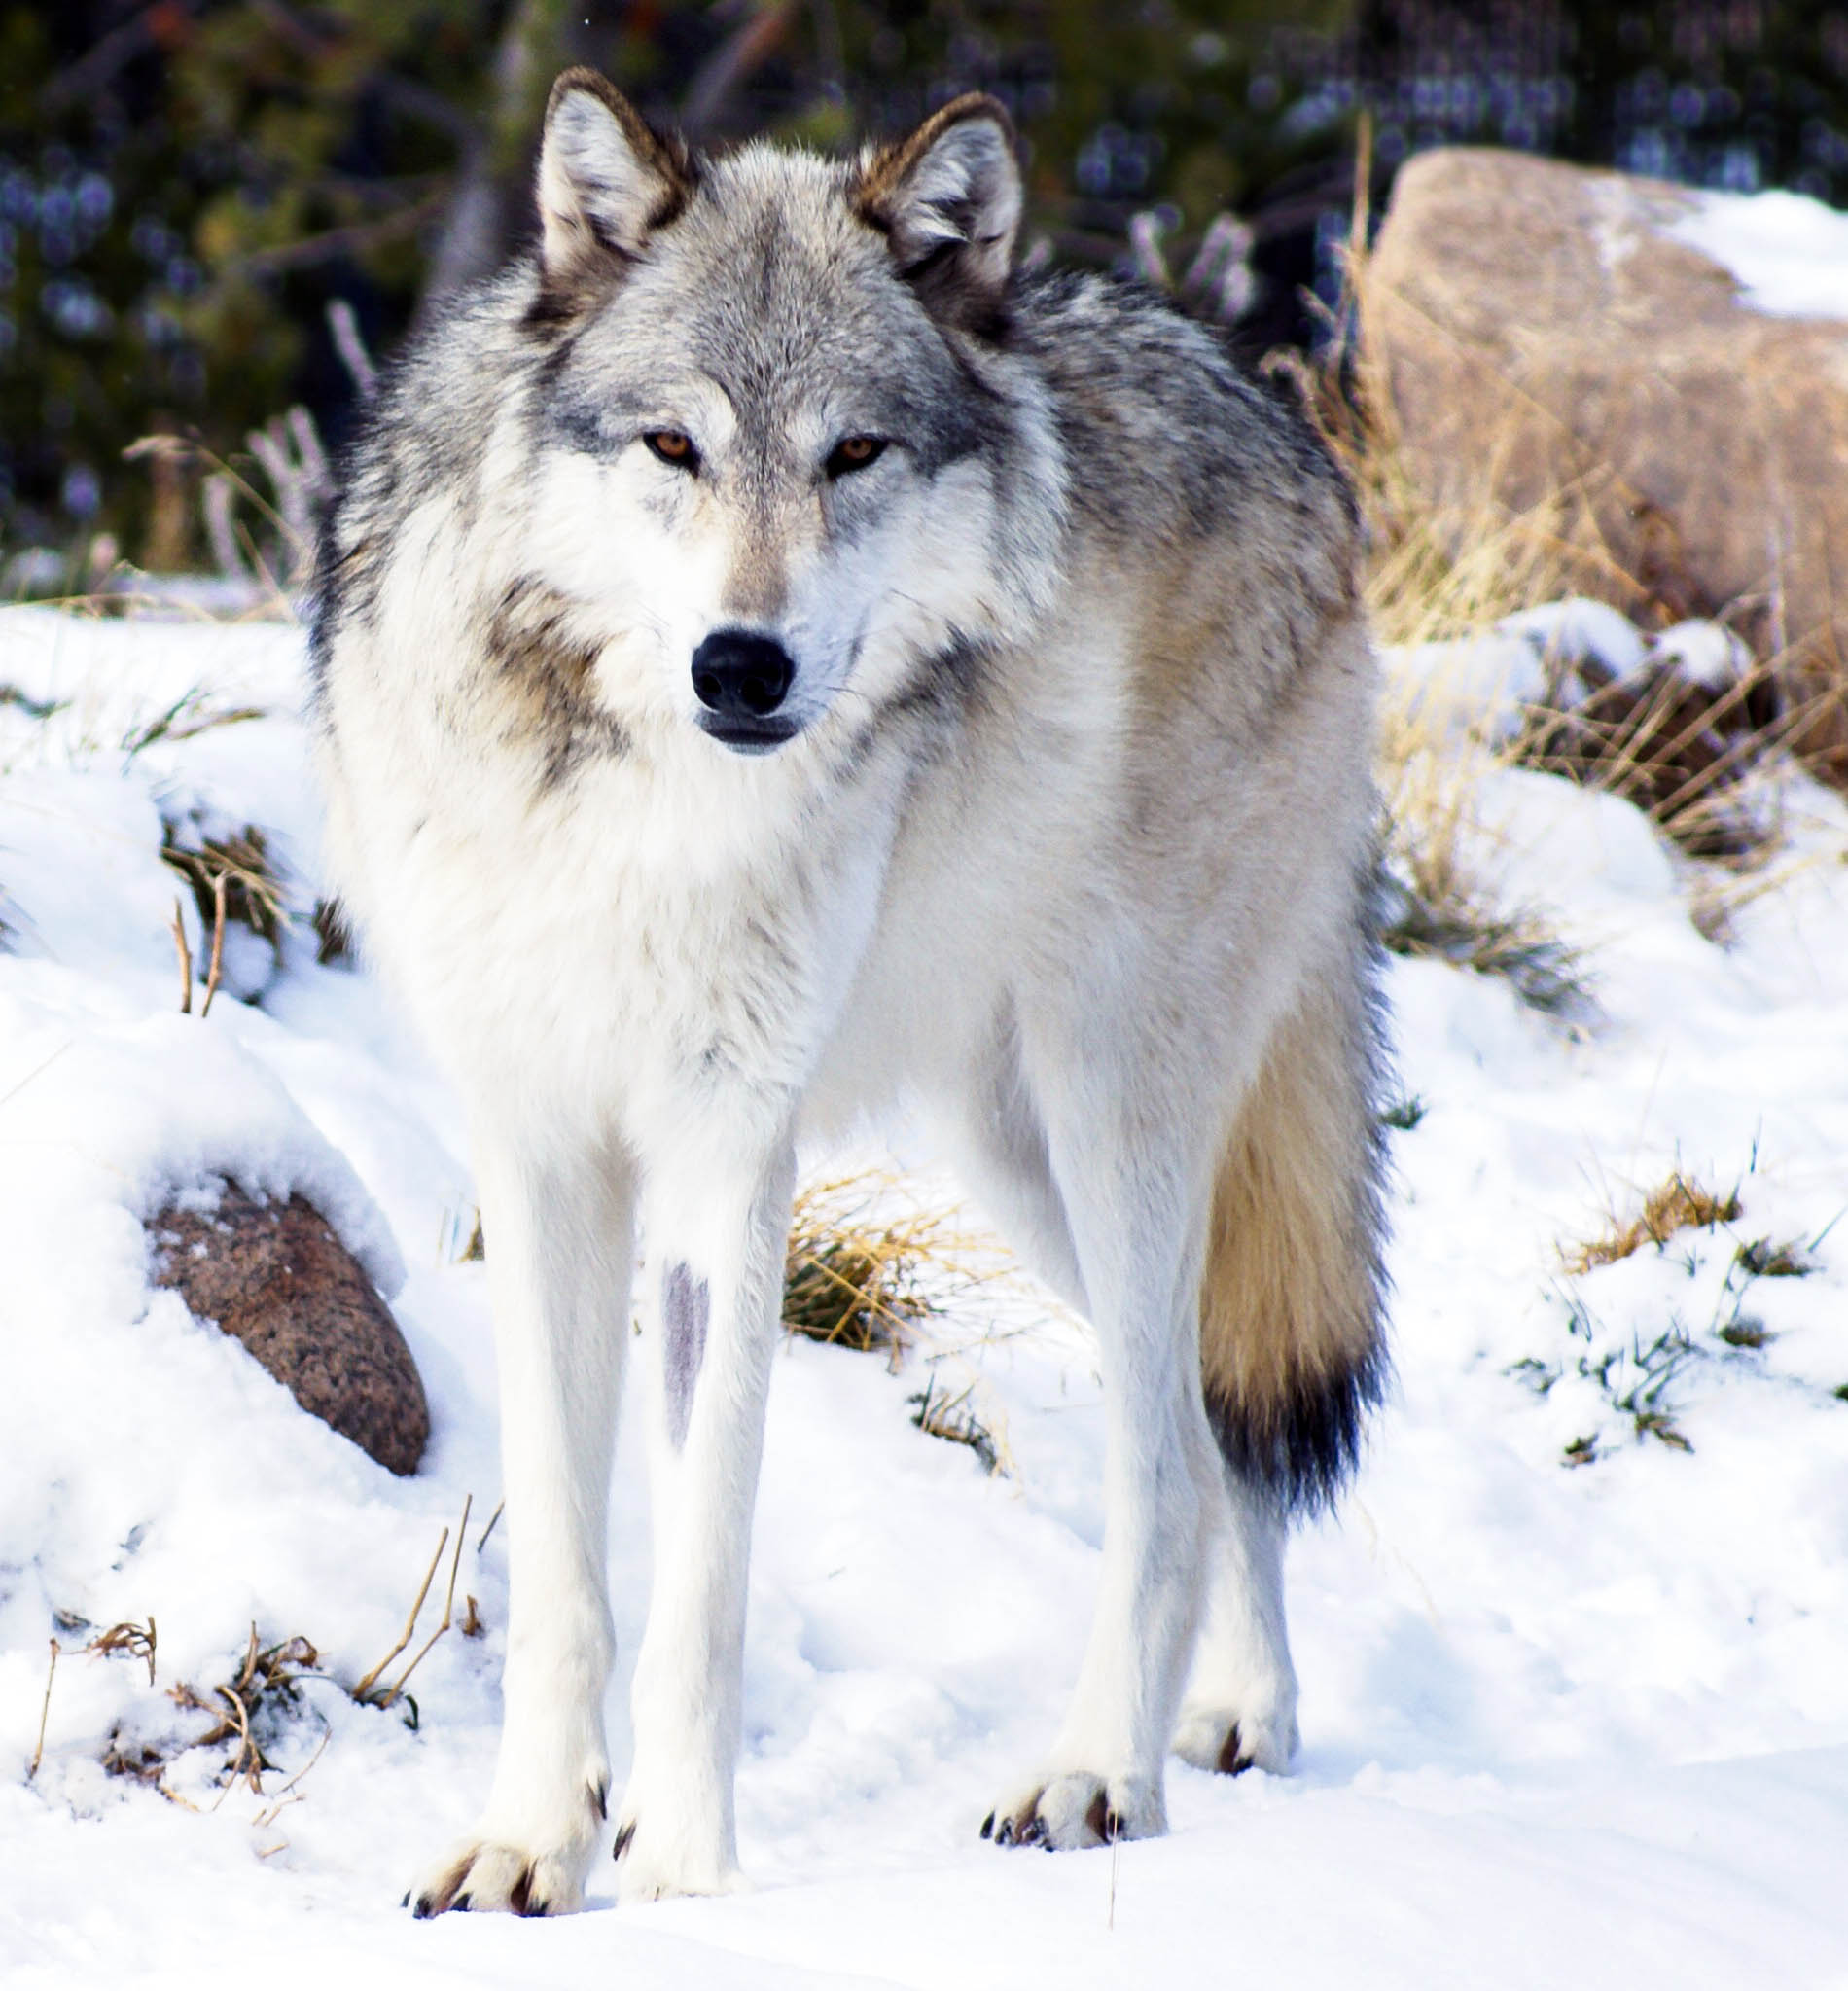 A wolf standing in snow